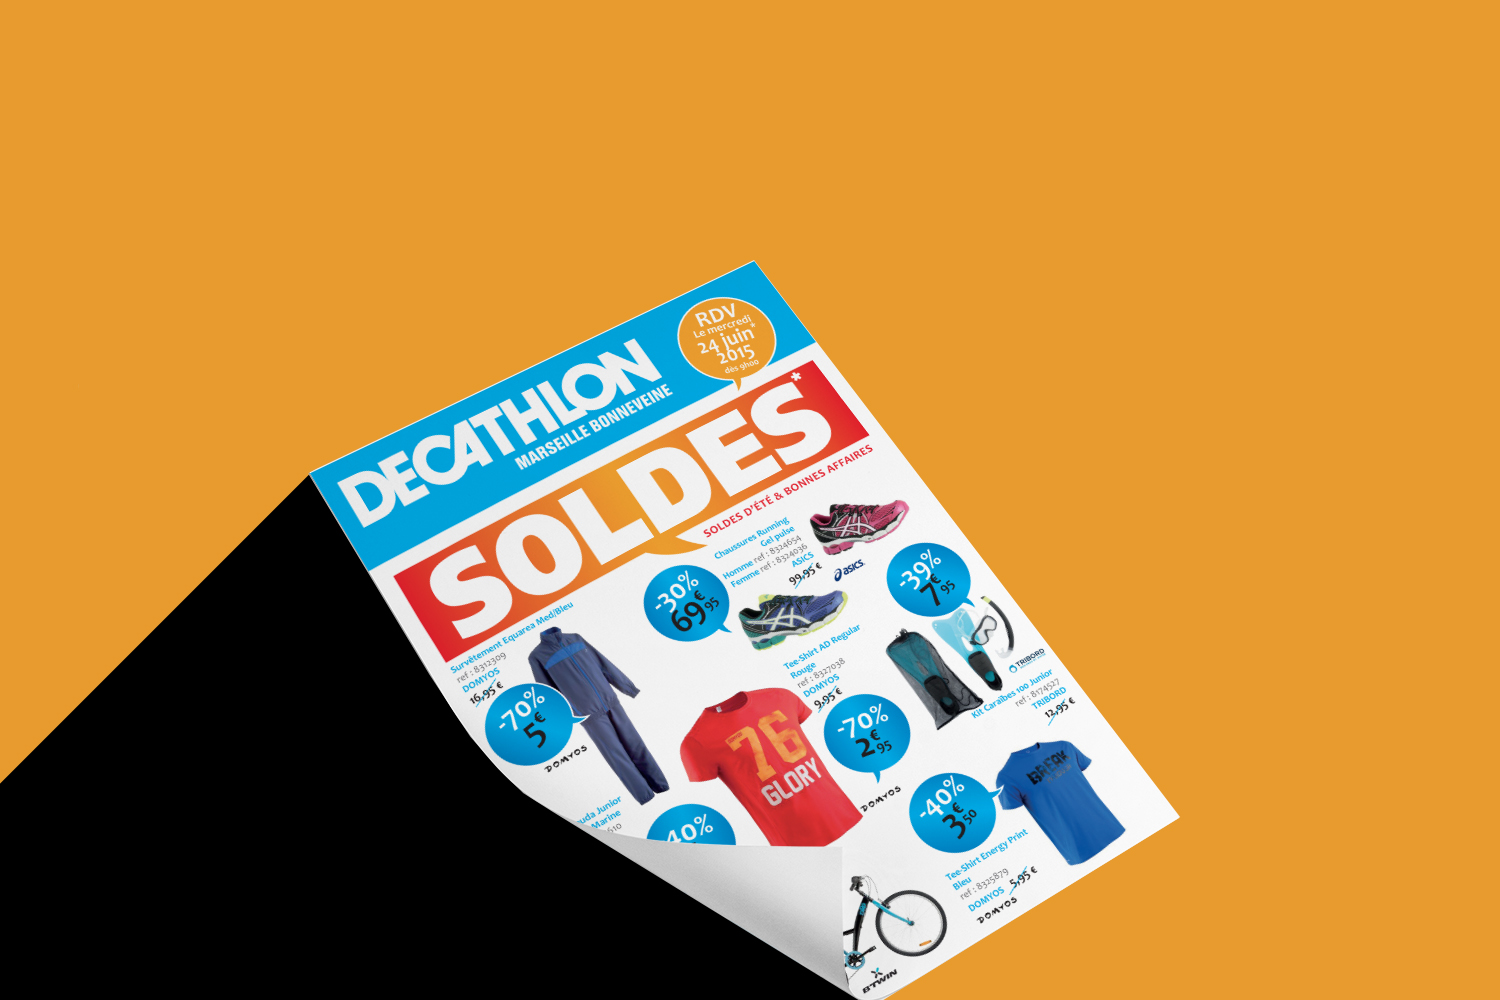 Decathlon-24 juin 2015